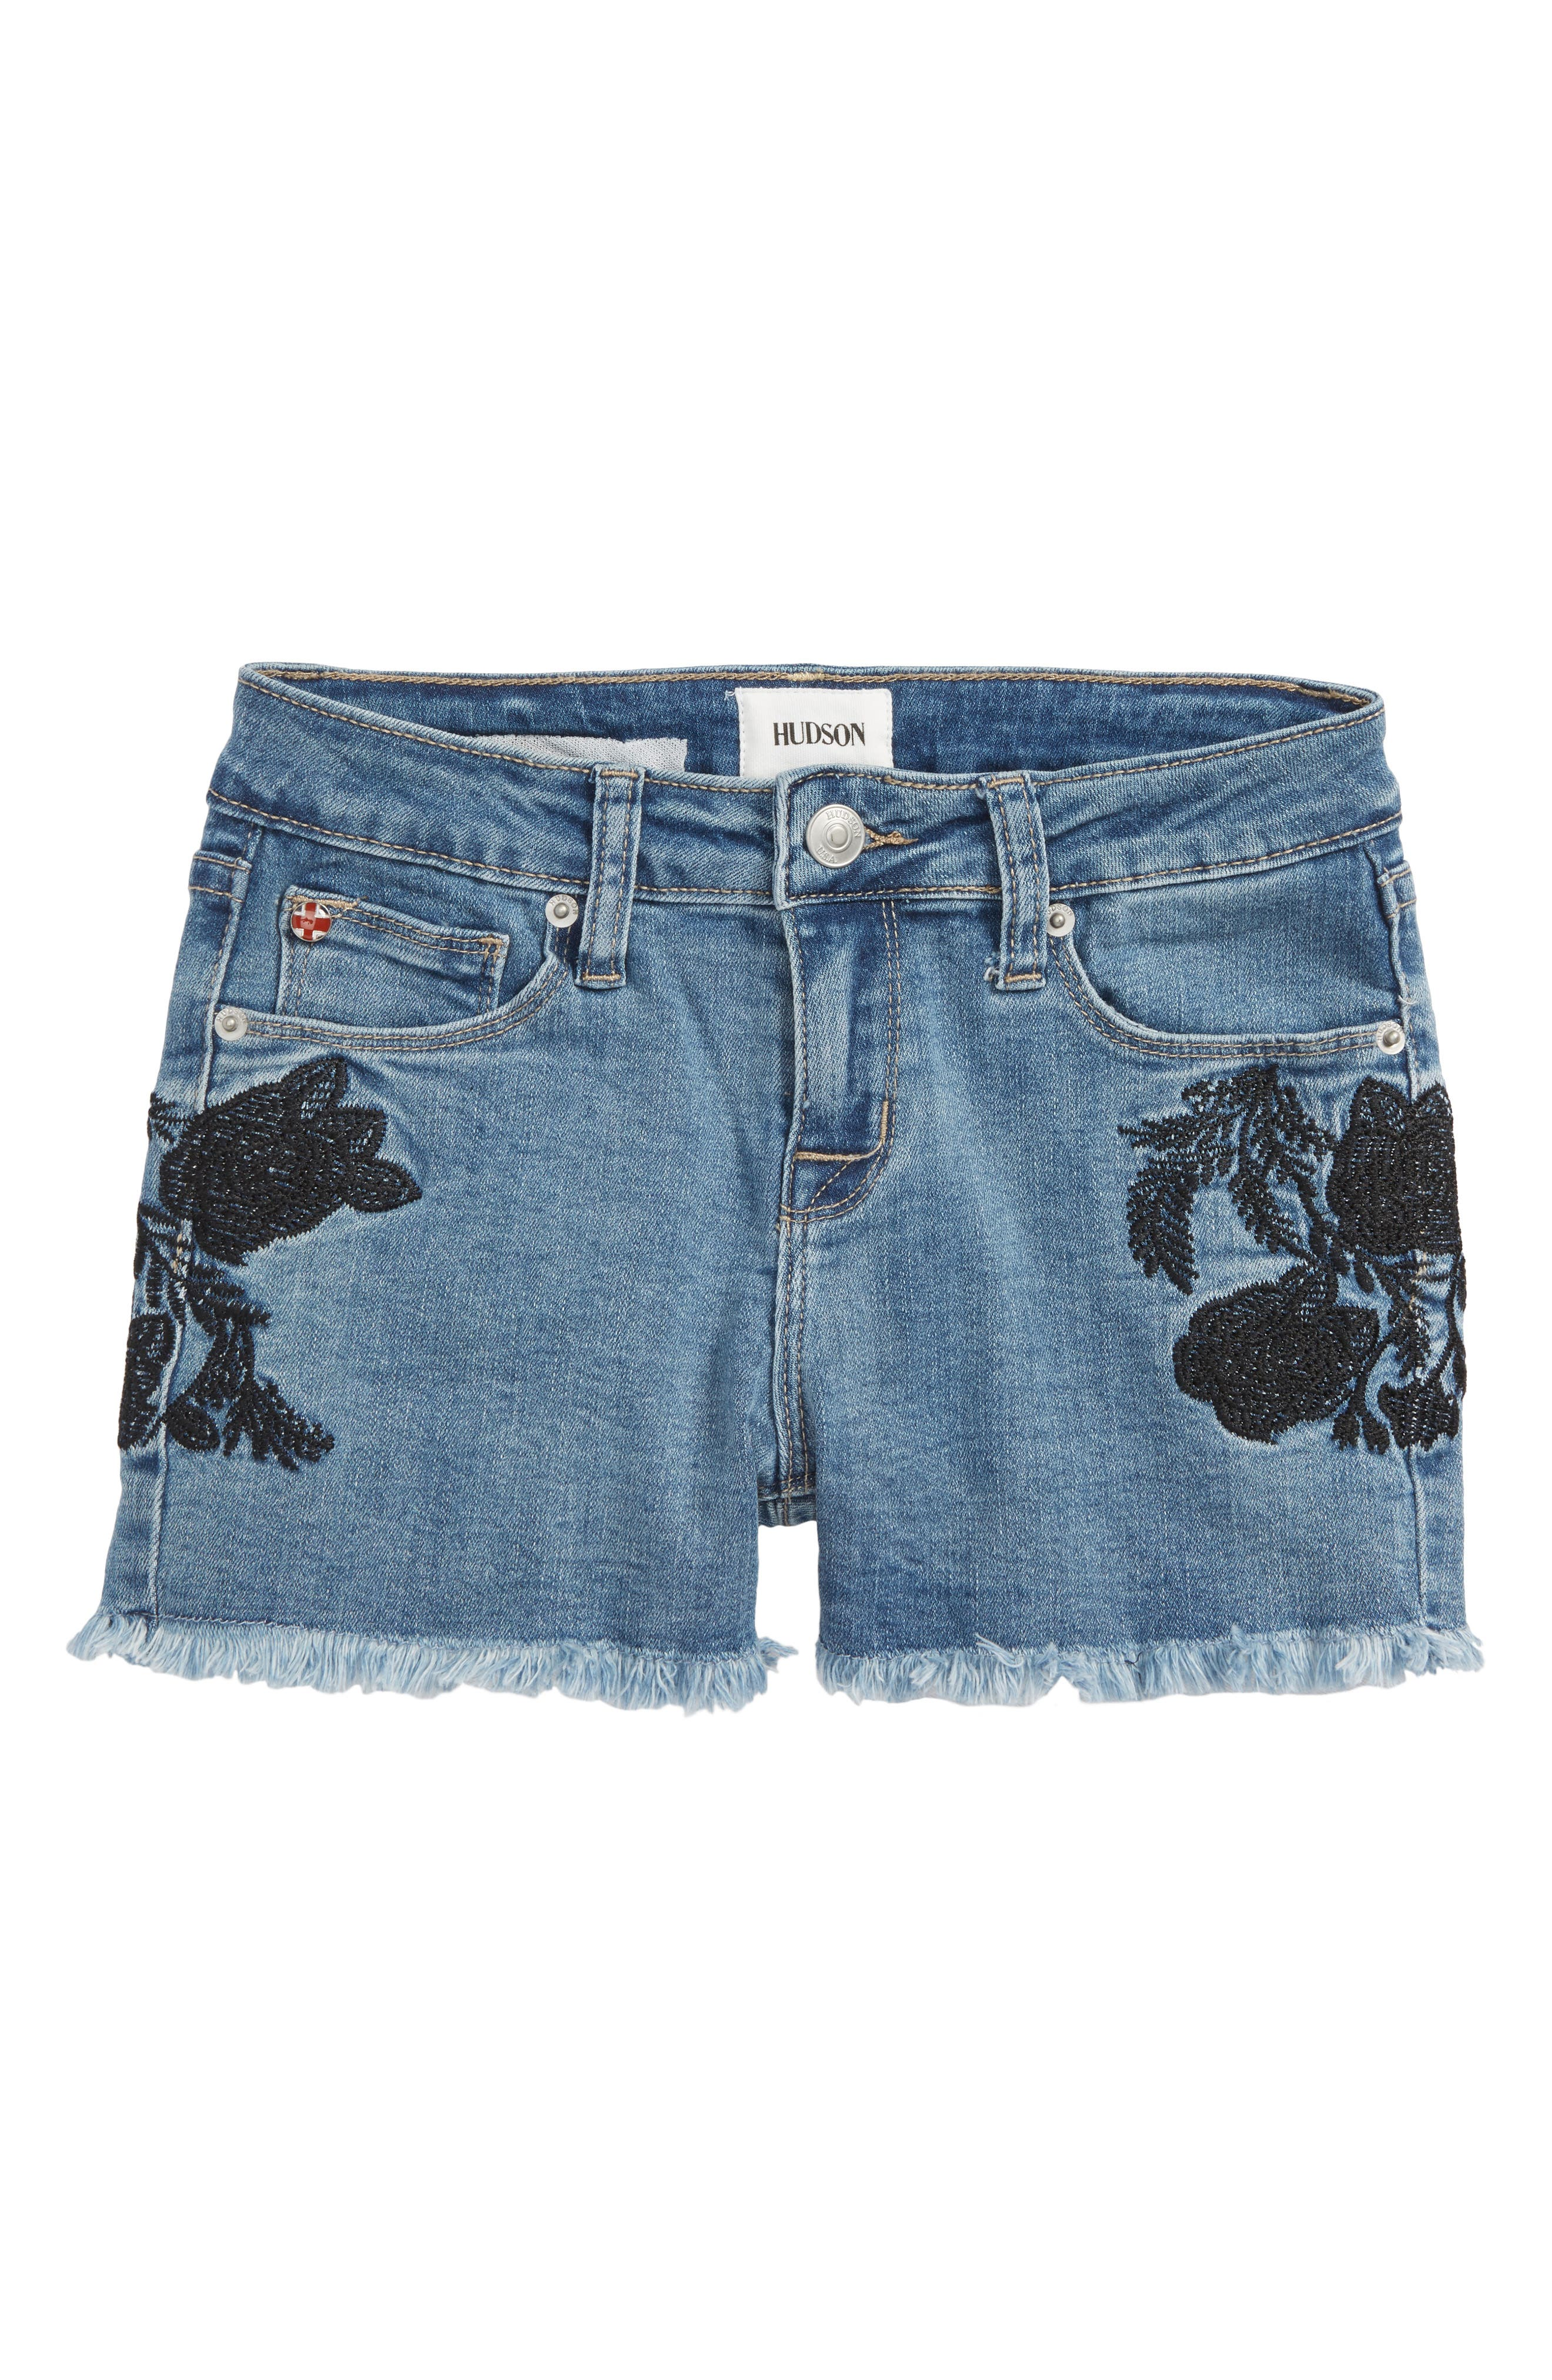 Floral Embroidery Frayed Hem Shorts,                         Main,                         color, 400